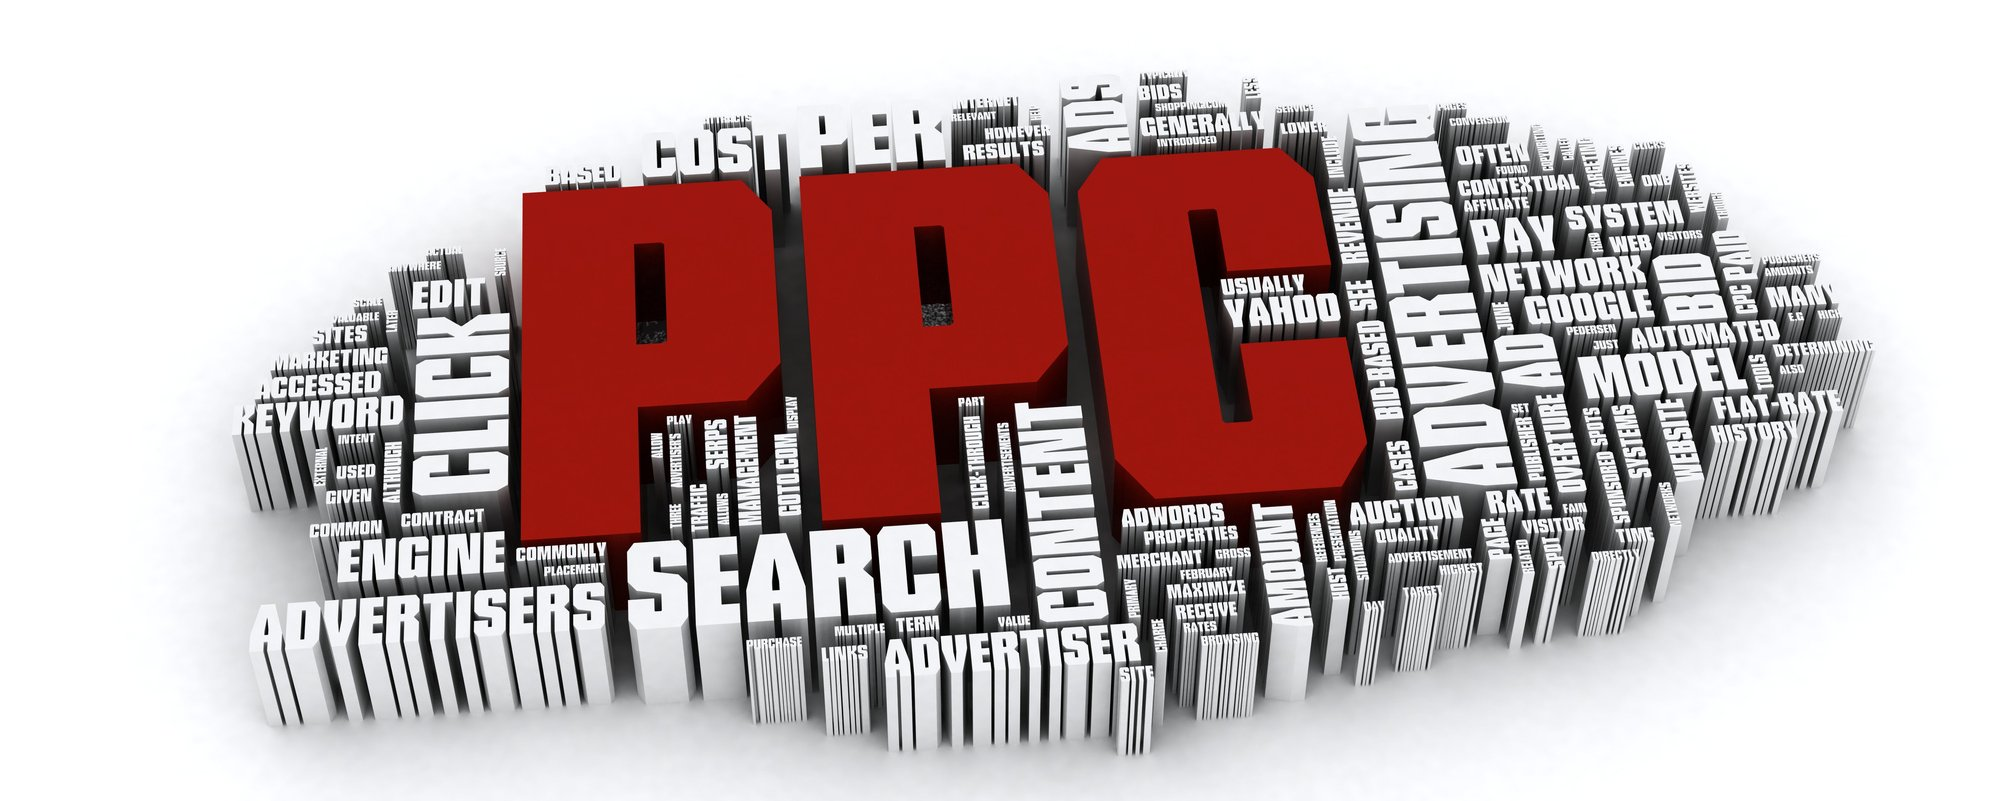 4 ways to ensure your PPC stands out: https://t.co/m19pycPap8 https://t.co/YFgpZOhC0W